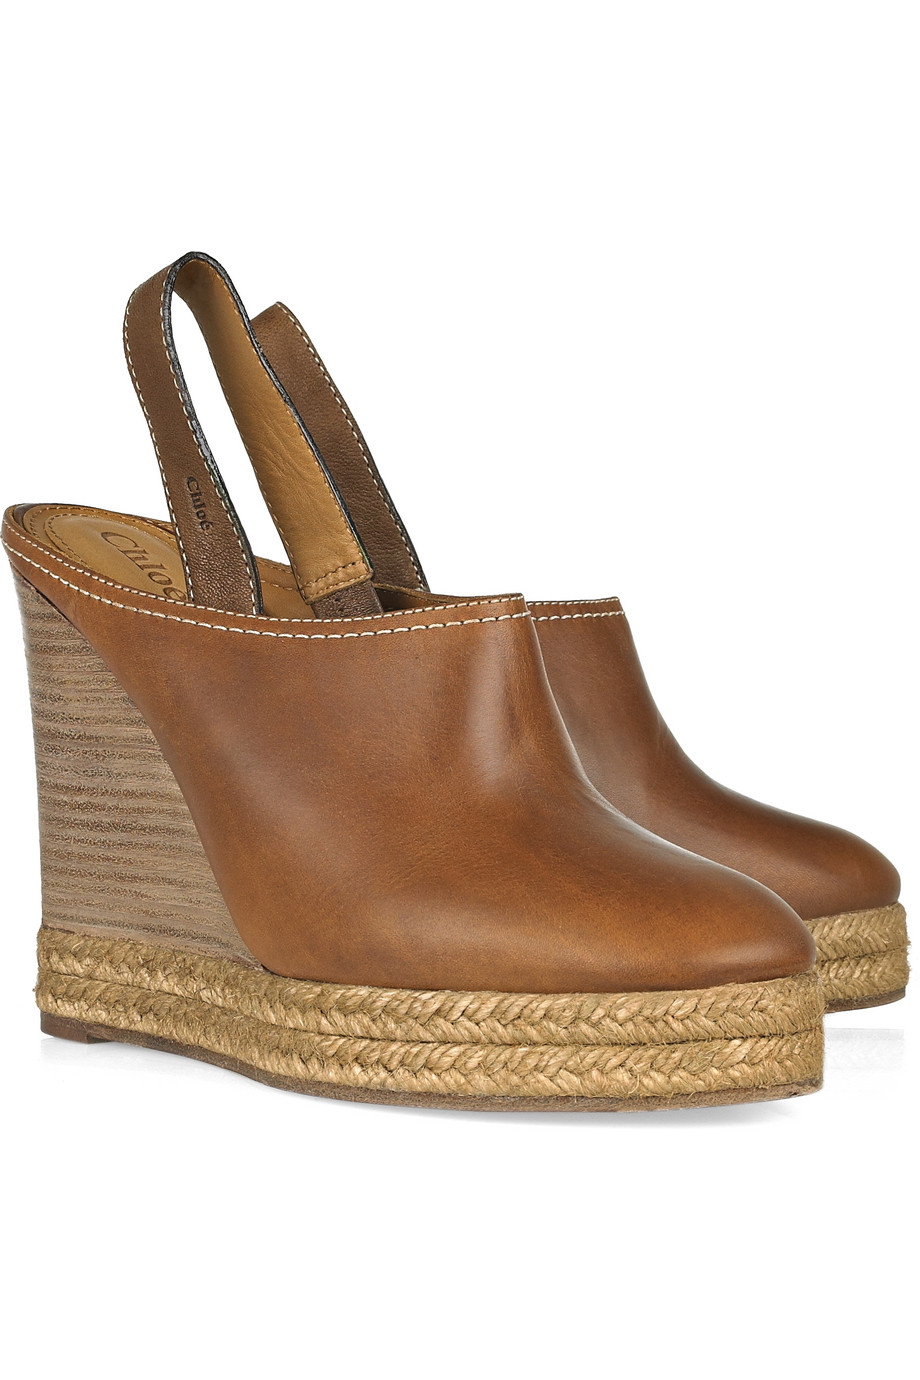 Chlo 233 Leather And Raffia Clogs In Brown Lyst